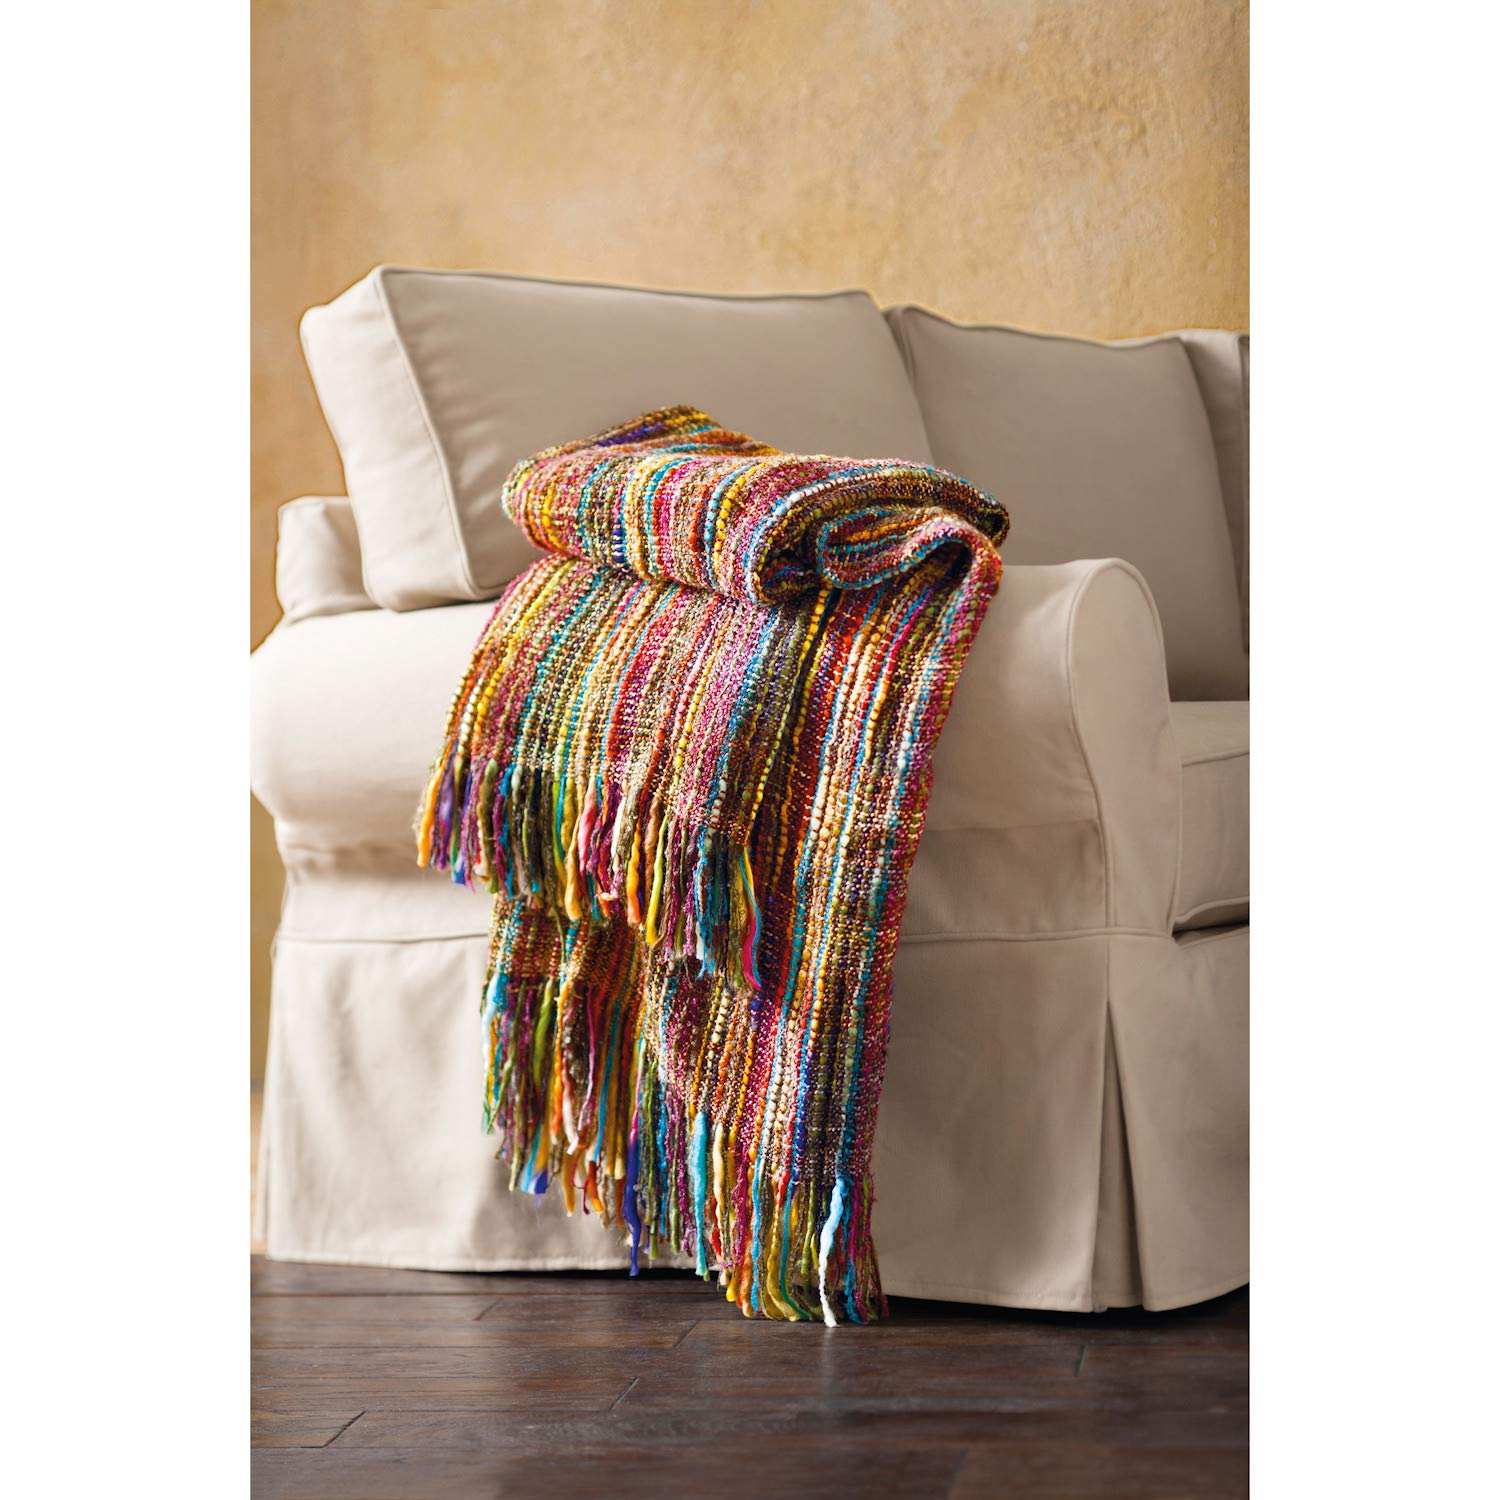 """ART & ARTIFACT Fringe Throw Blanket - Chunky Knit Decorative Warm Acrylic Afghan - 48"""" x 70"""" - Bright Striped Colors"""